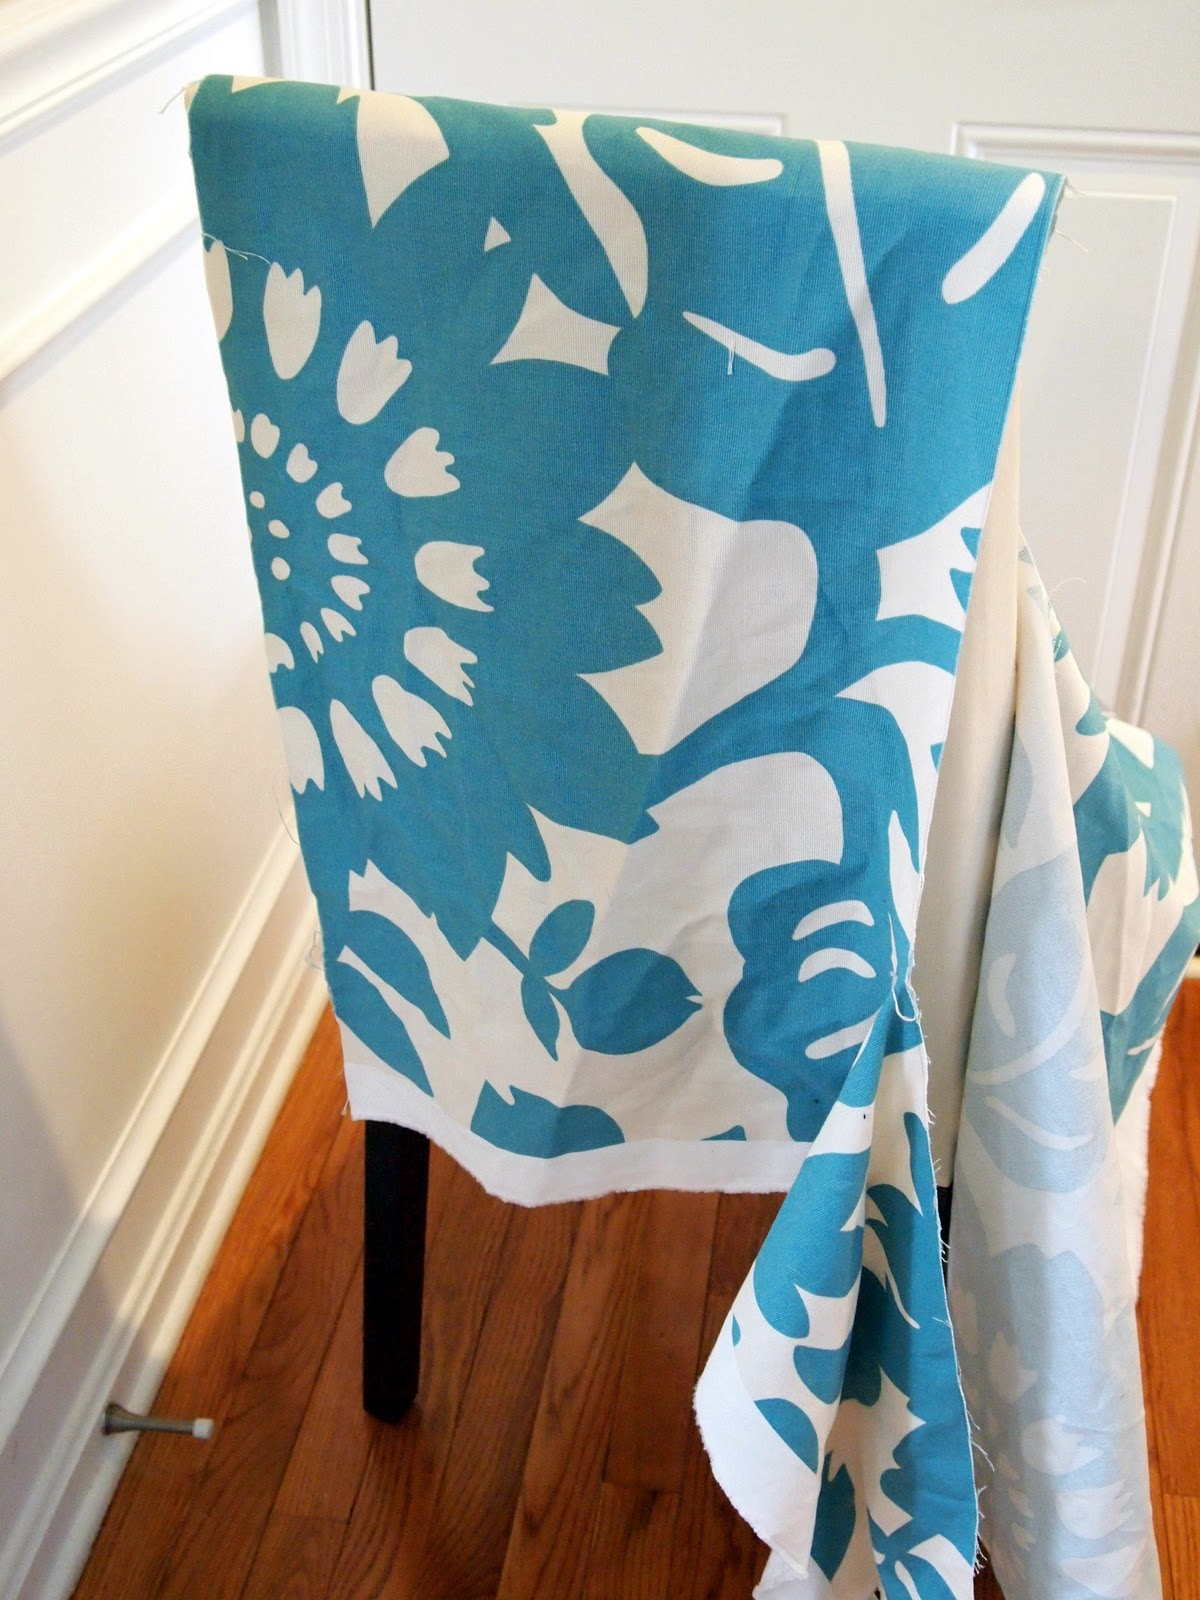 Charmant LoveYourRoom: My Morning Slip Cover Chair Project Using Remnant Fabric (no  Sewing Needed!)